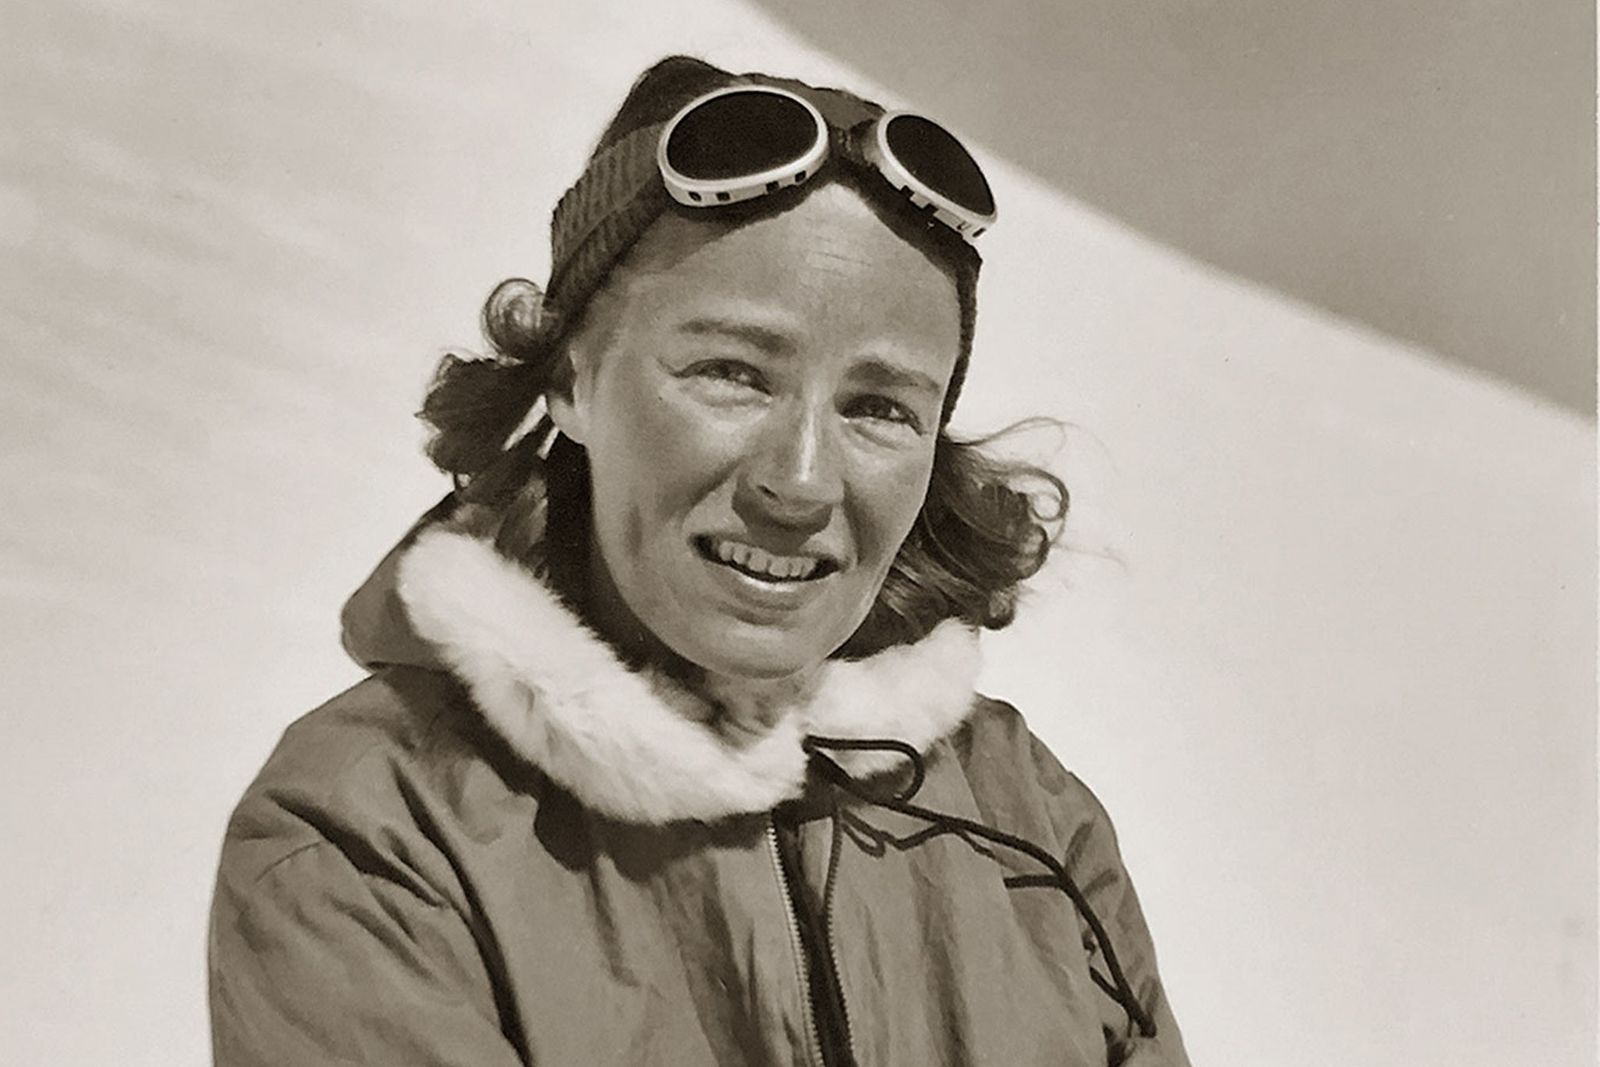 Barbara Washburn, l'alpiniste qui a cartographié le Grand Canyon